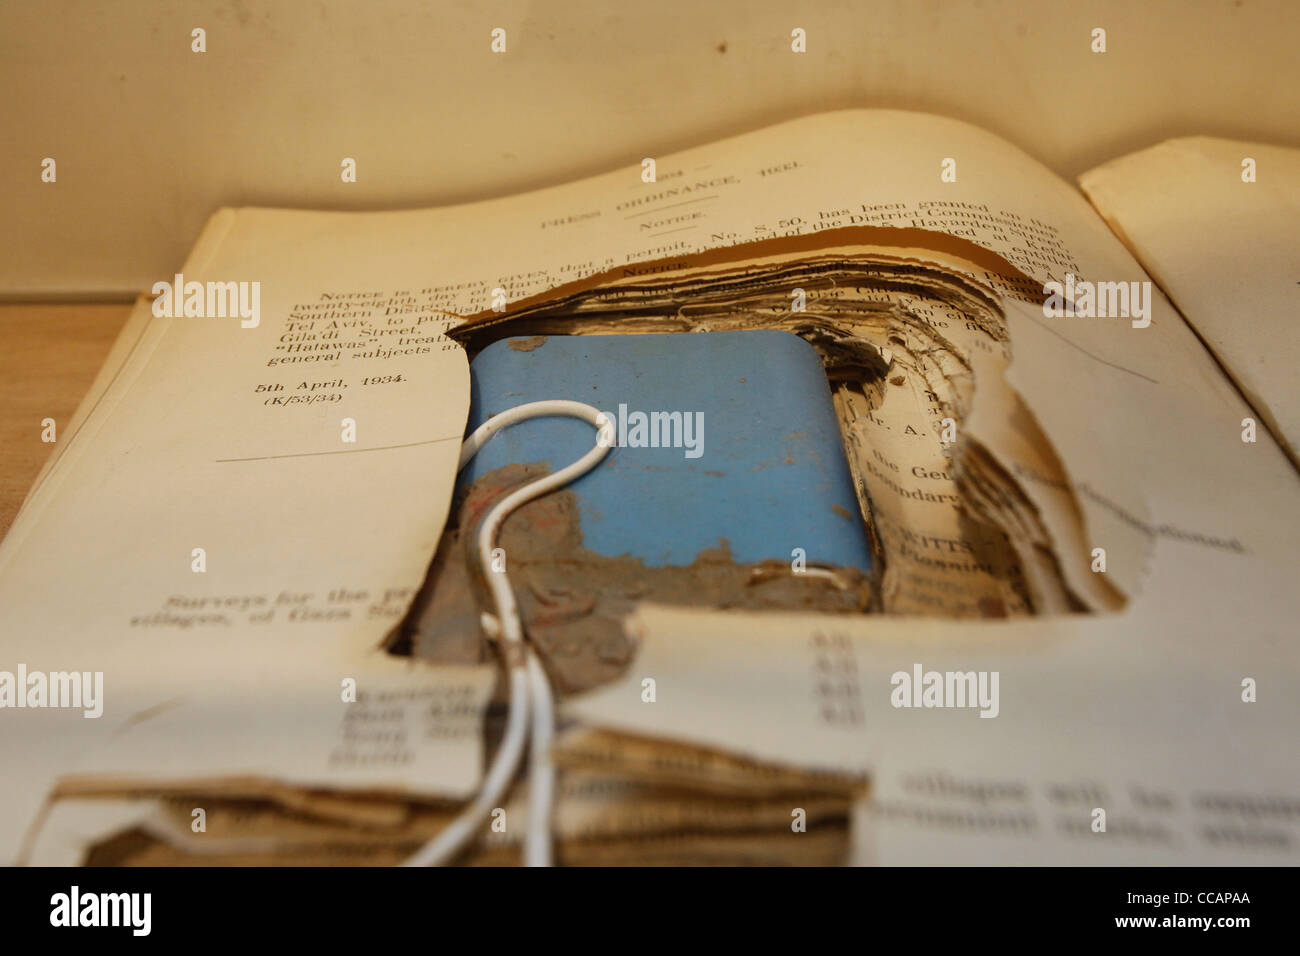 An exhibit depicting explosive device inside a book on display in the Lehi Museum, also known as Beit Yair, placed - Stock Image